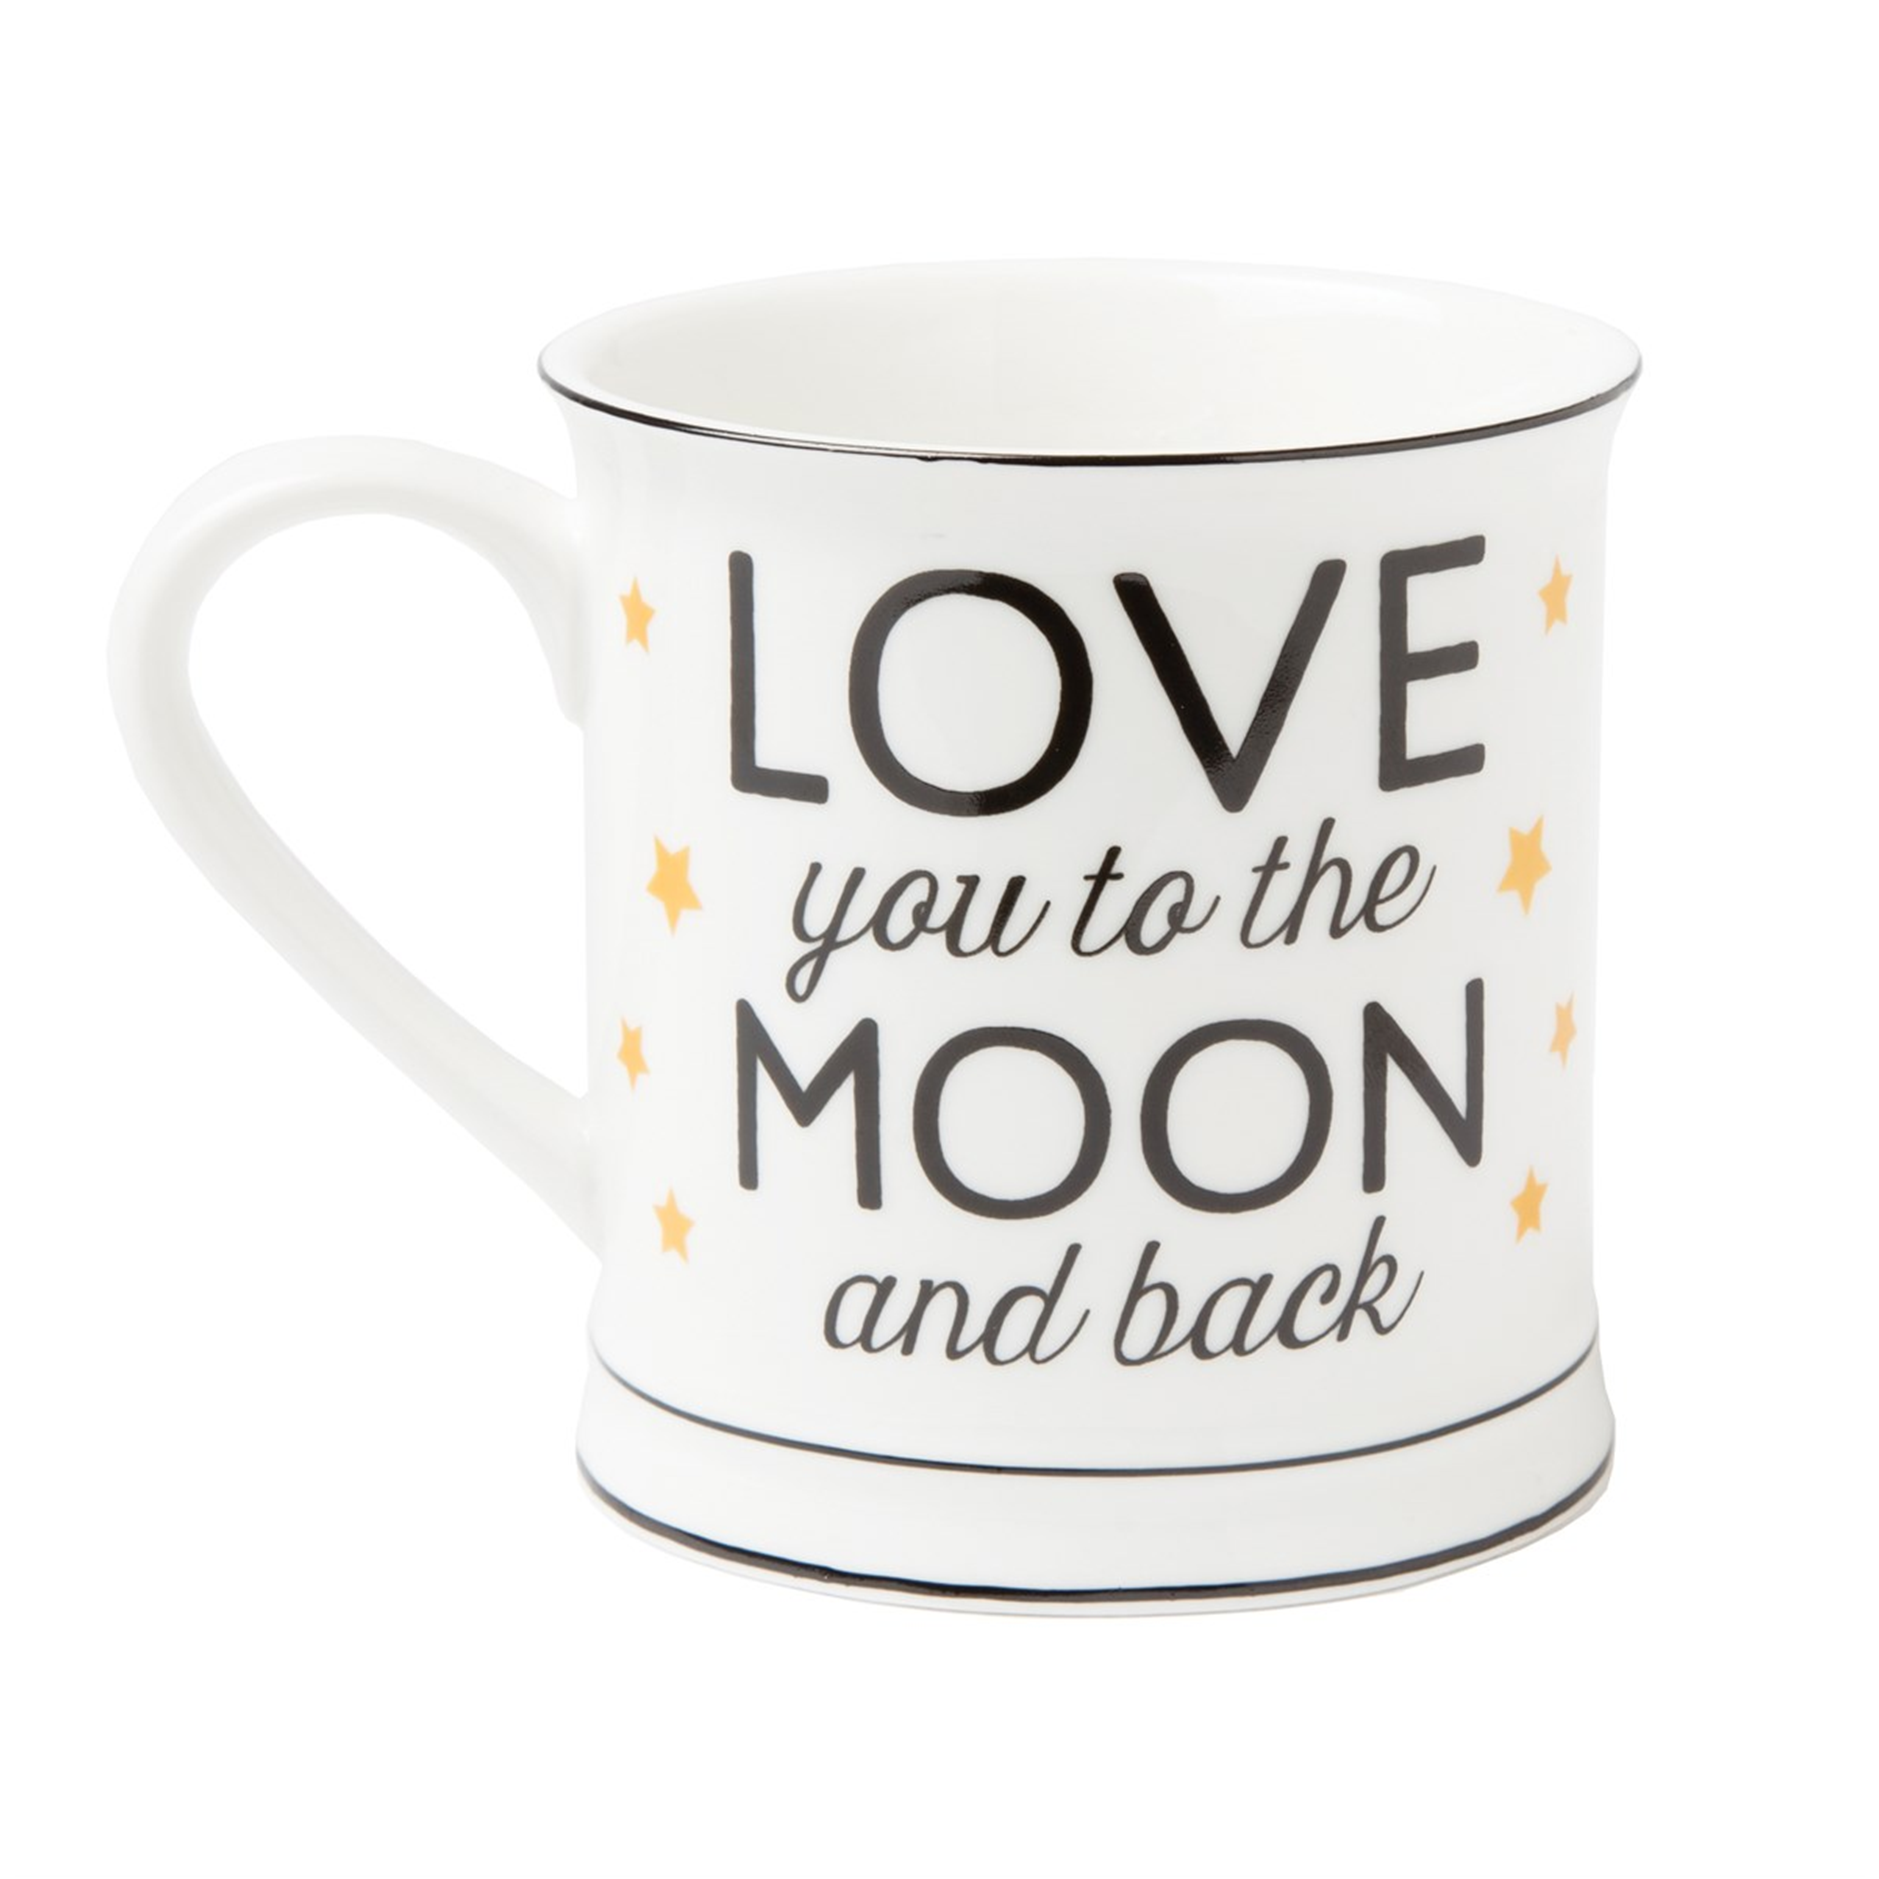 Love_you_to_the_moon_and_back_Mug_KD047